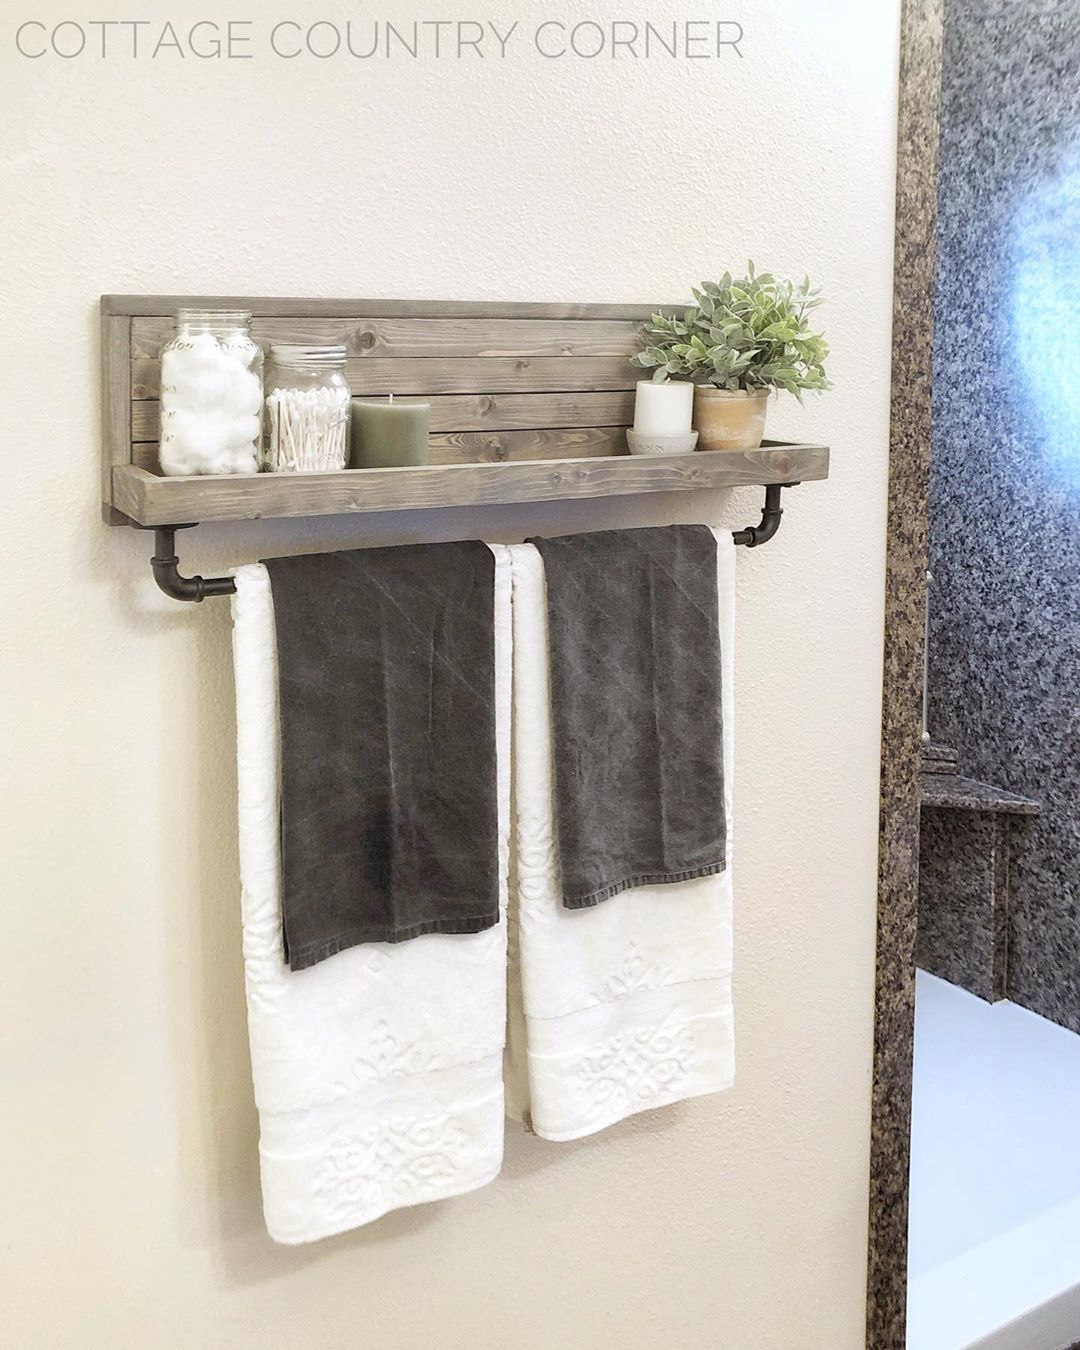 When I Designed Our Towel Racks I Had No Clue You Would All Love Them As Much As I Do They Are Now One Of Our T Bathroom Decor Towel Rack